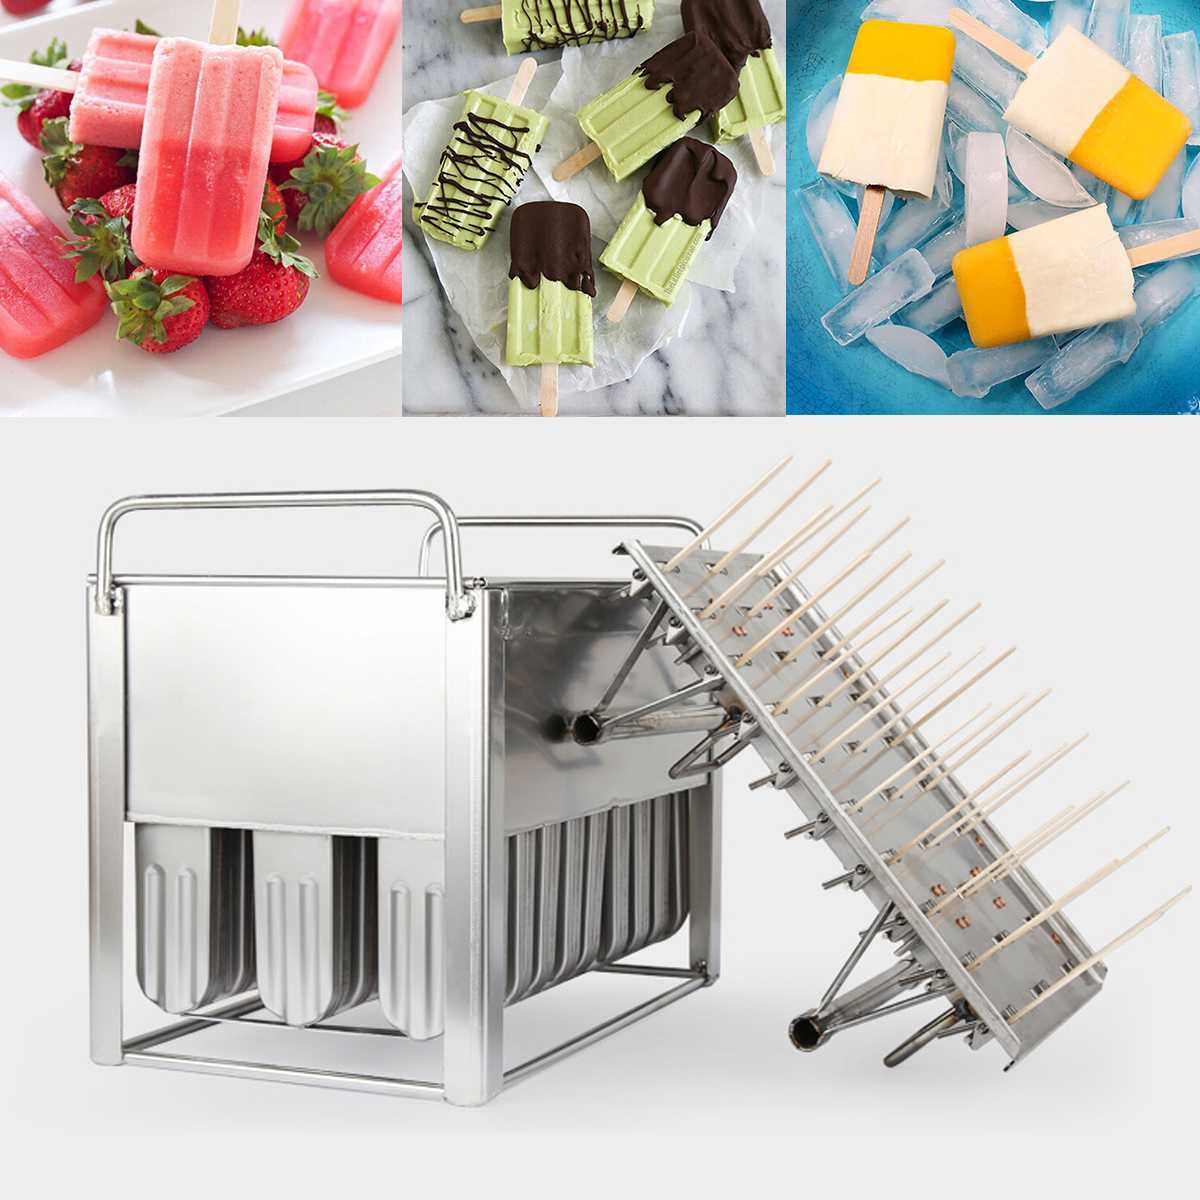 Stainless Steel Frozens 30pcs Ice Lolly Popsicle Molds Ice Cream Stick Holder Summer Home DIY Cream Round Flat Ice Pop Mould